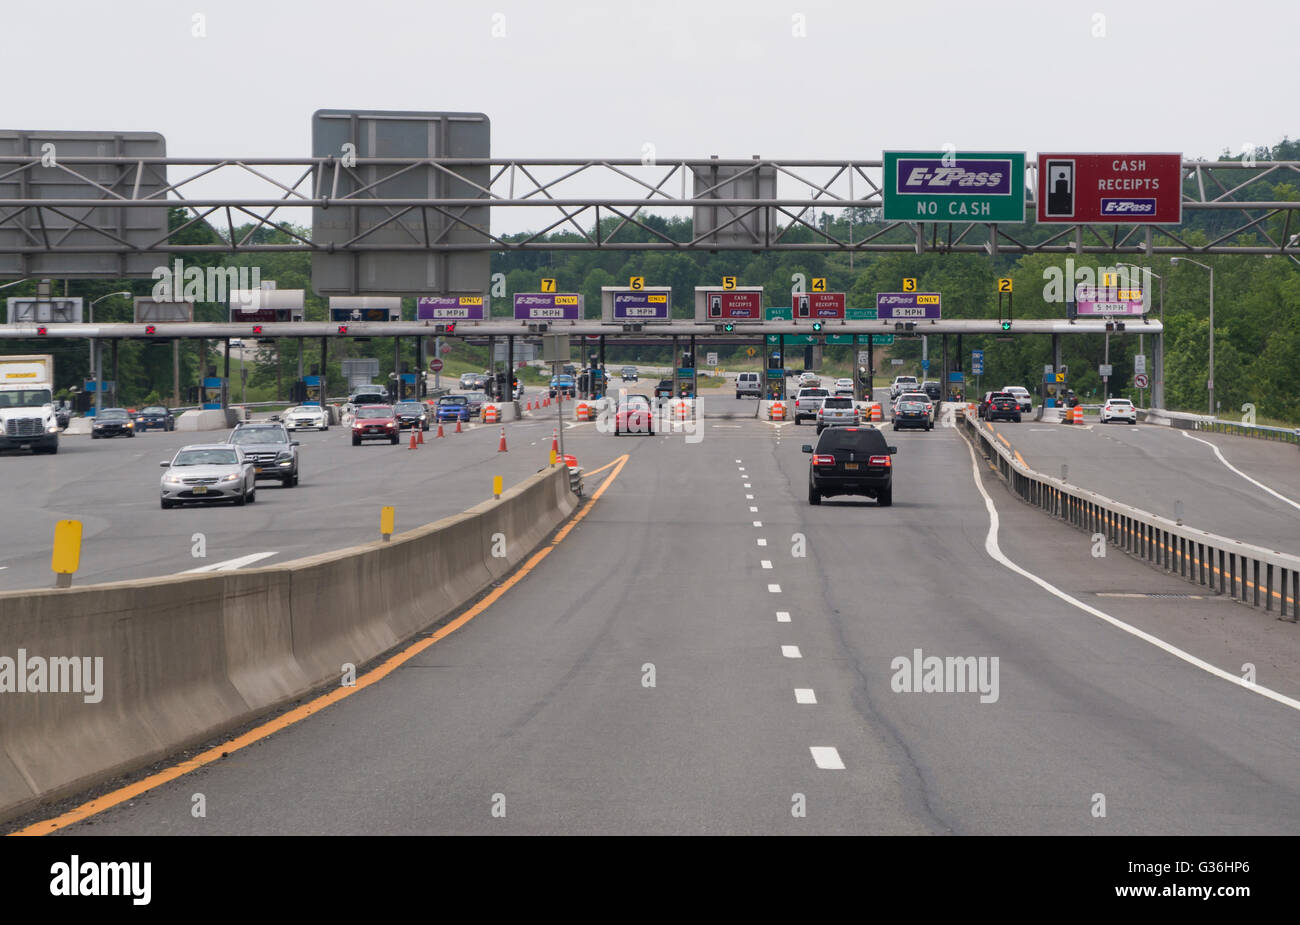 Highway approach to toll booths on the New York State Thruway, USA - Stock Image